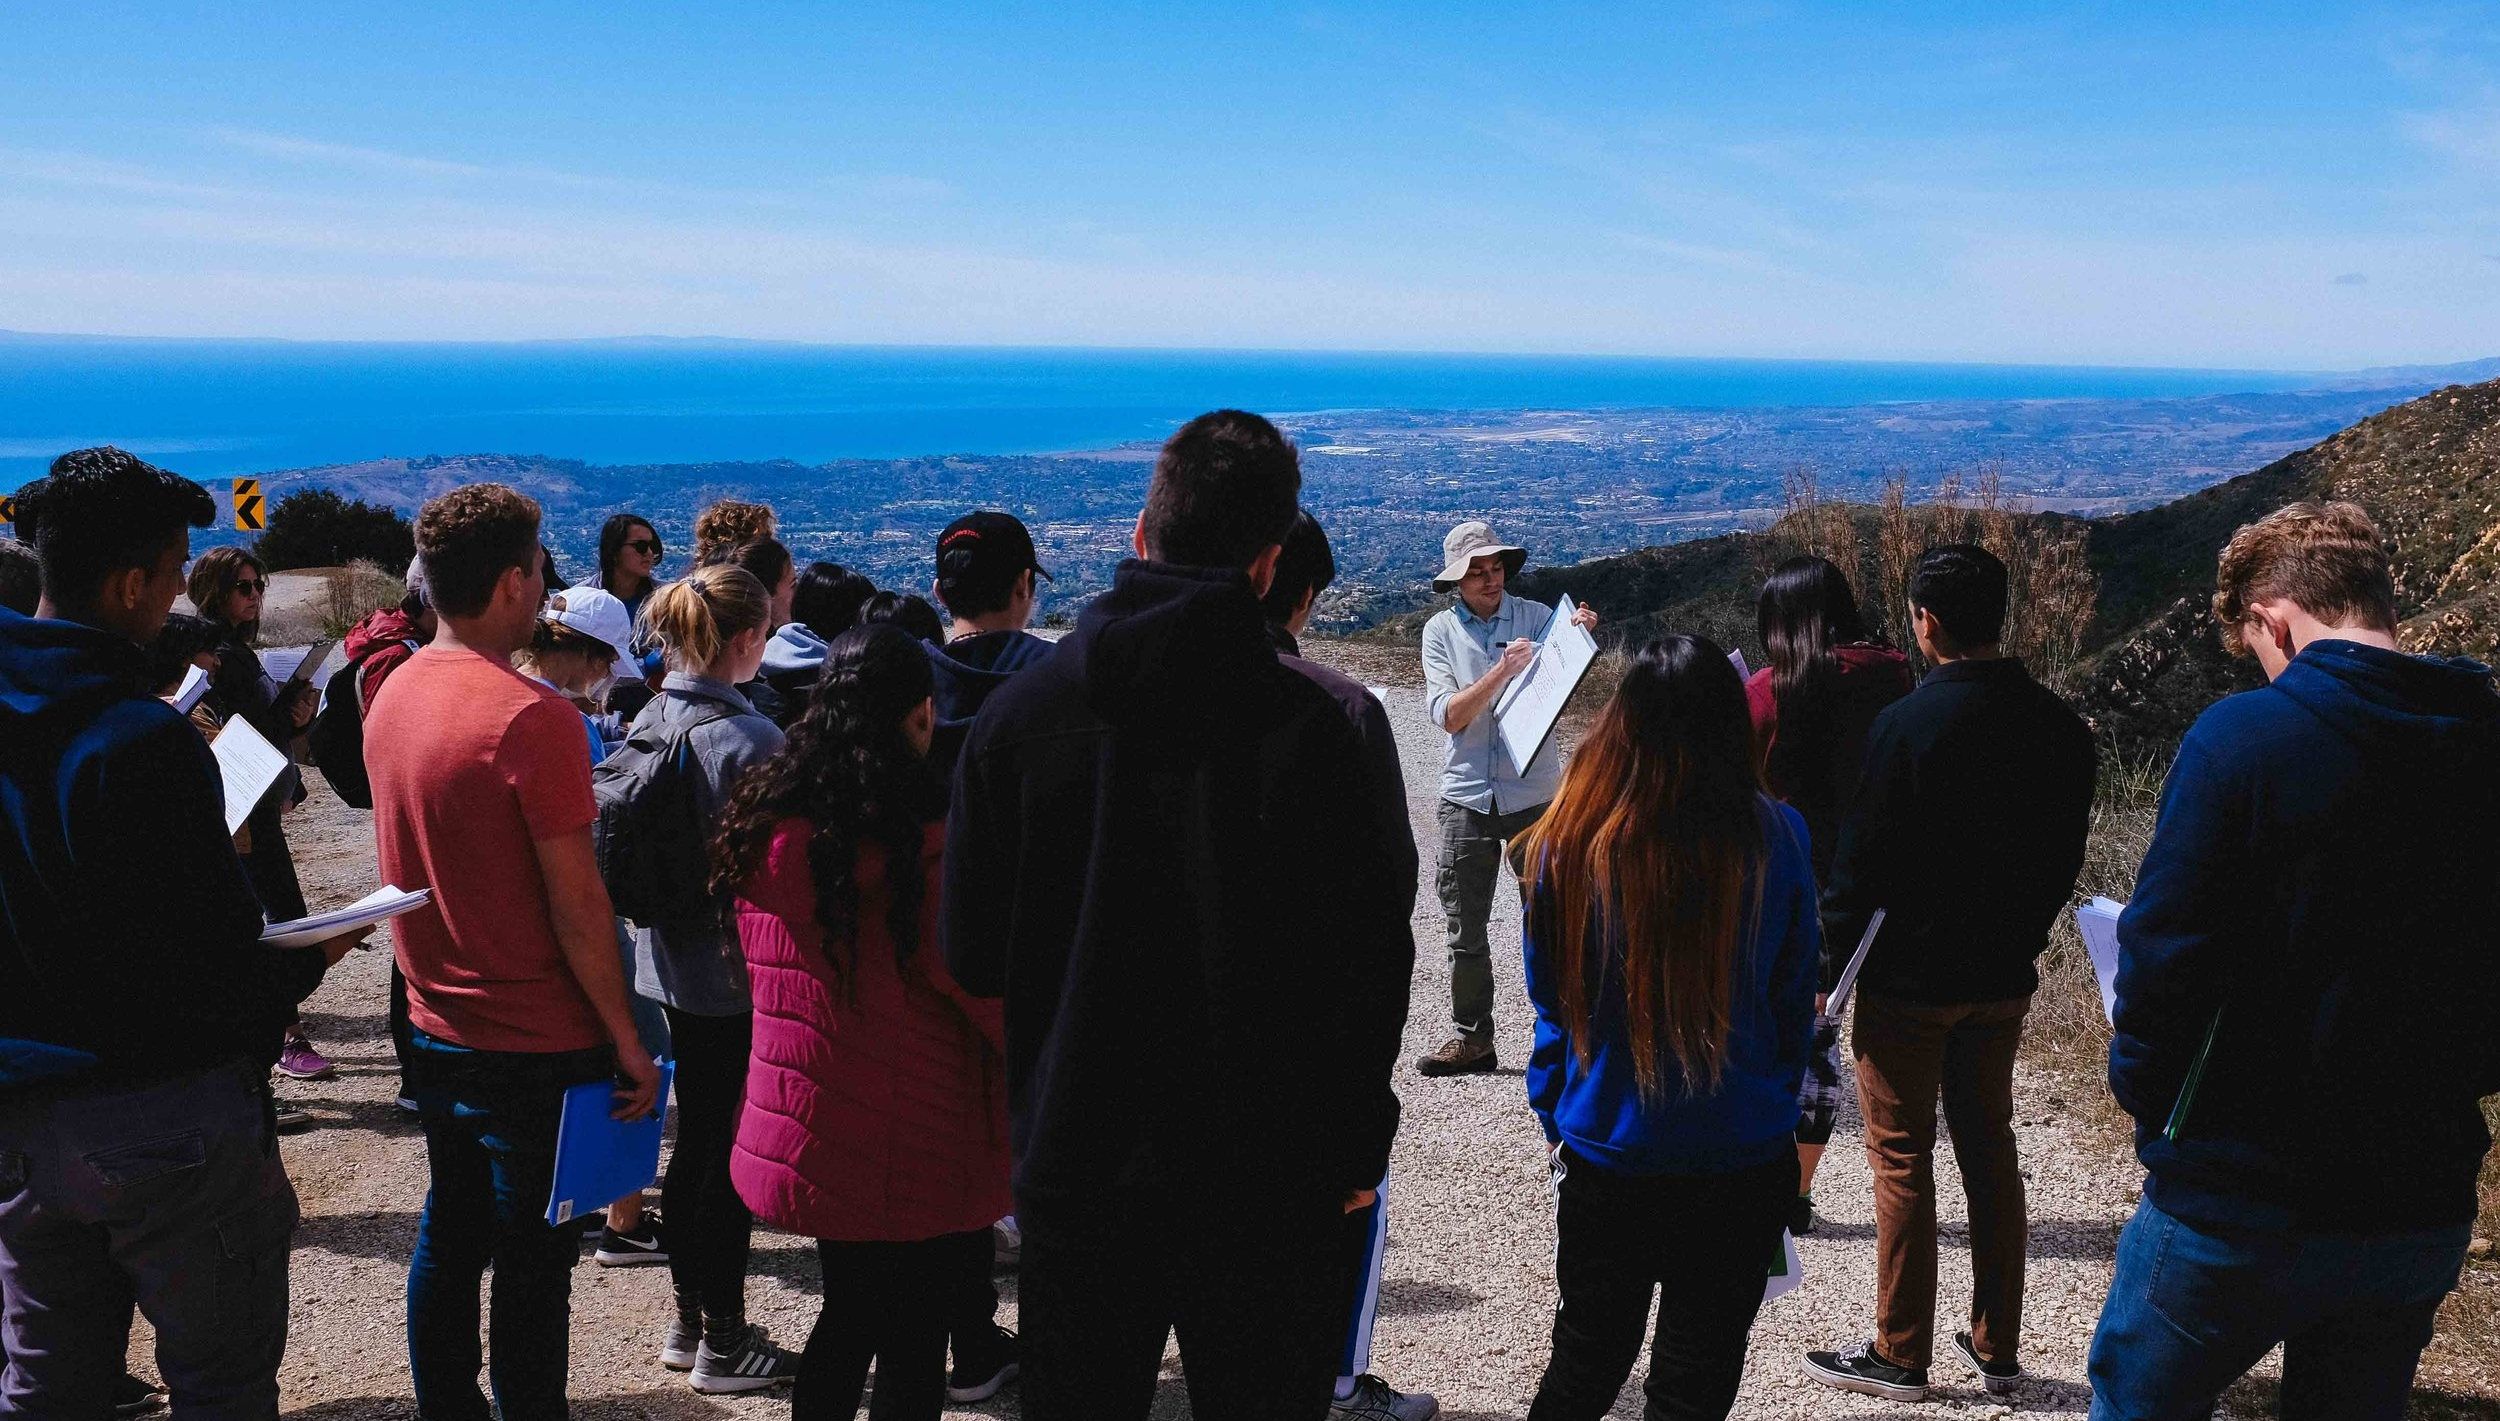 Leading a UCSB undergraduate field trip in the Santa Ynez mountains. Immediately behind me, you can just about make out the UCSB campus nestled against the coast.